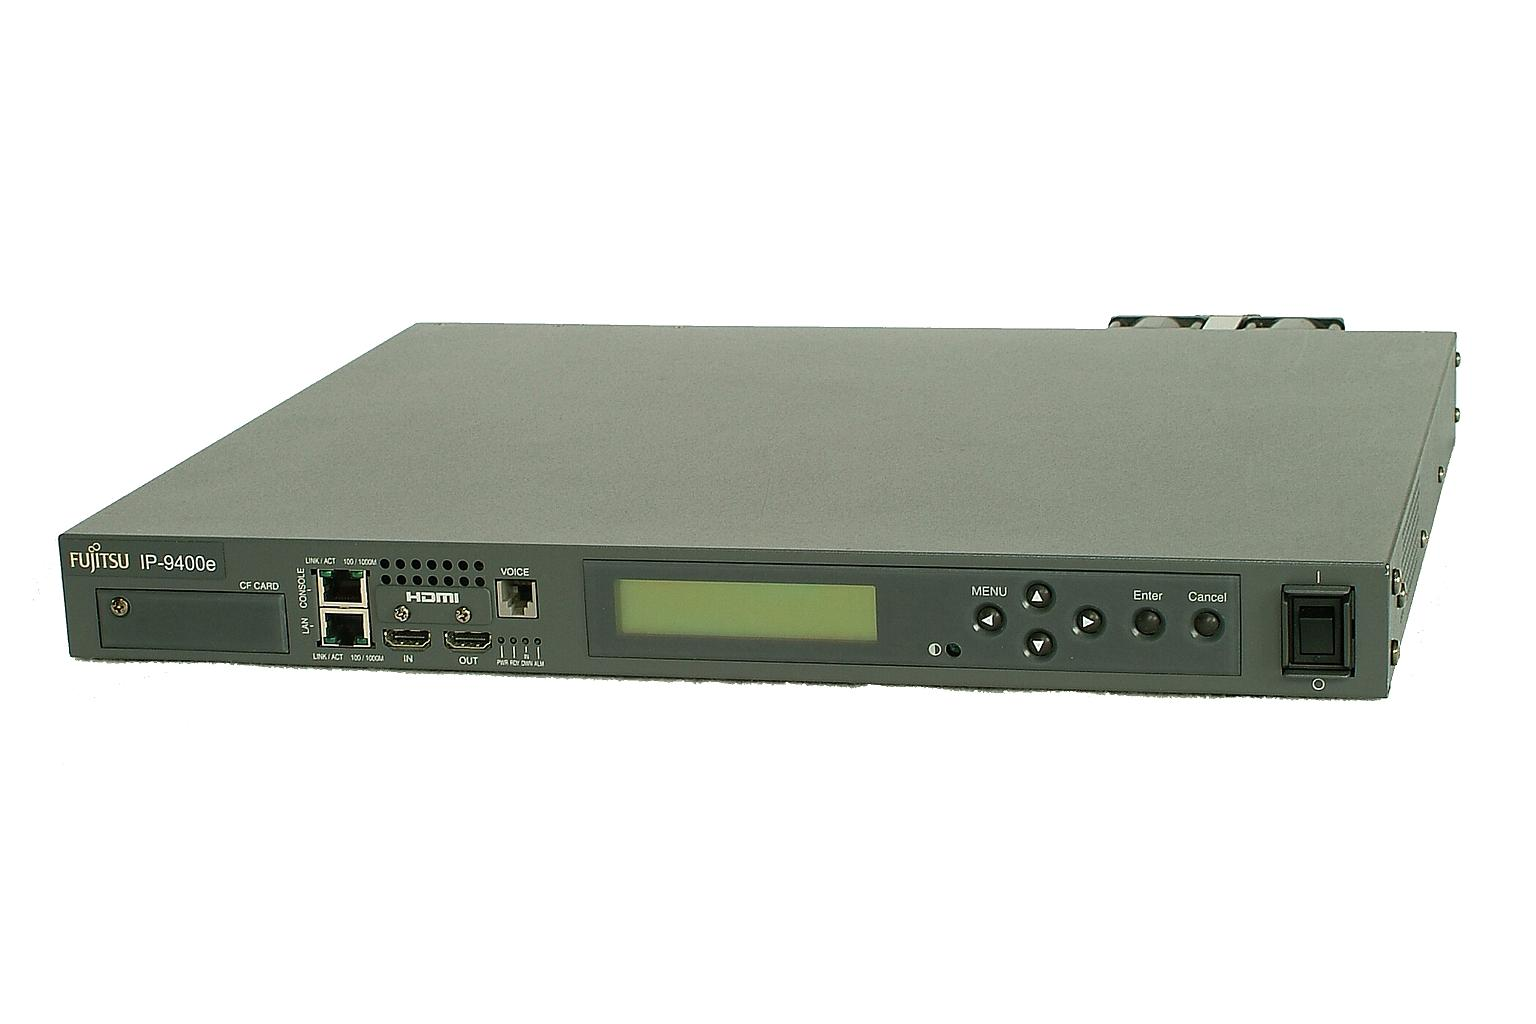 Ip 9400 Hd Sd Economy Video Encoder Fujitsu Global Fullduplex Intercom Pcb For Your Office And House Electronic Design Larger View